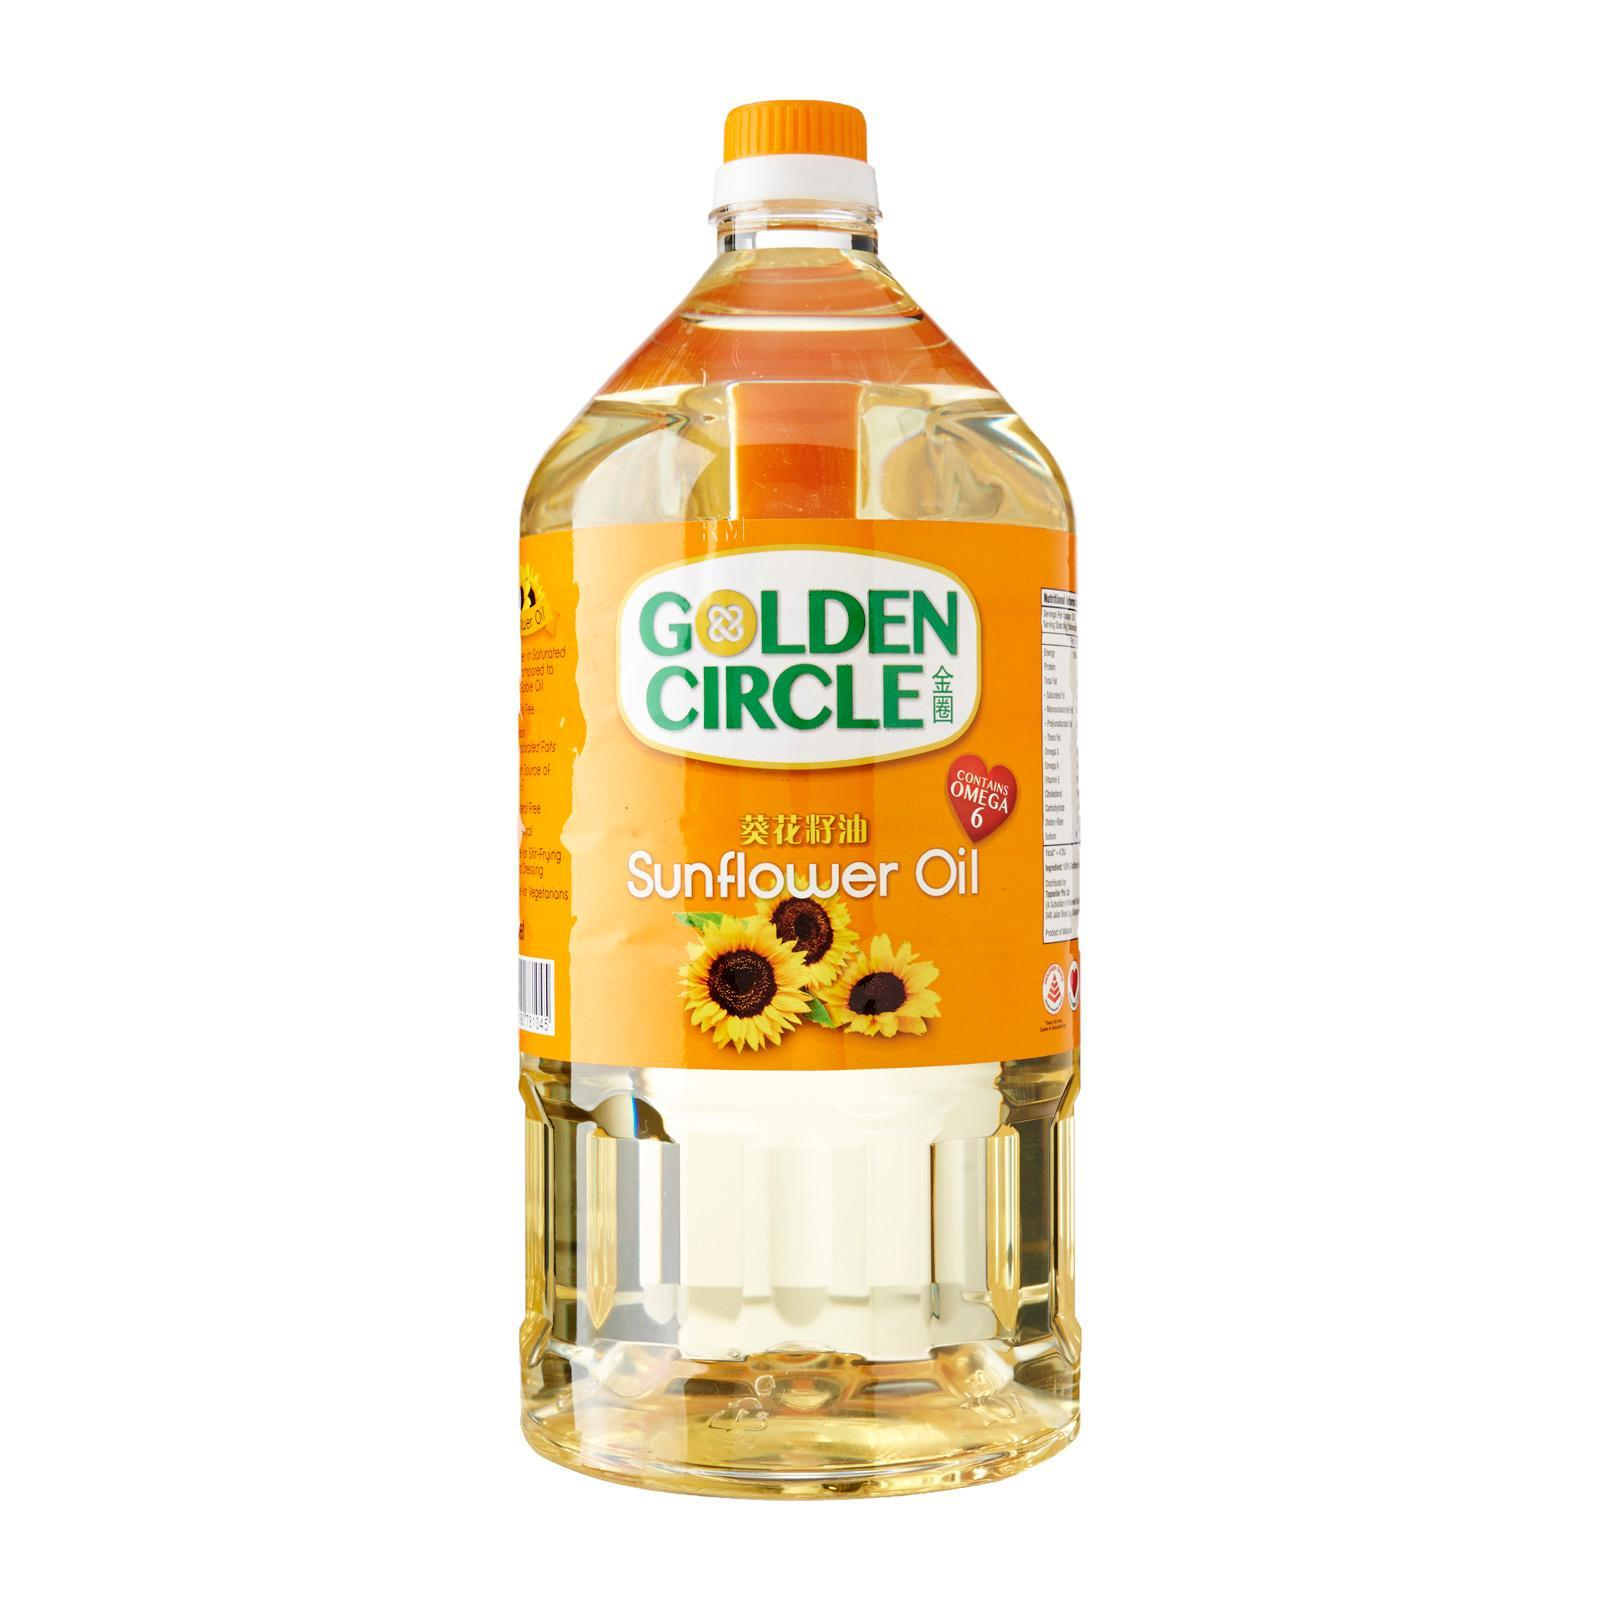 Golden Circle 100% Pure Sunflower Oil